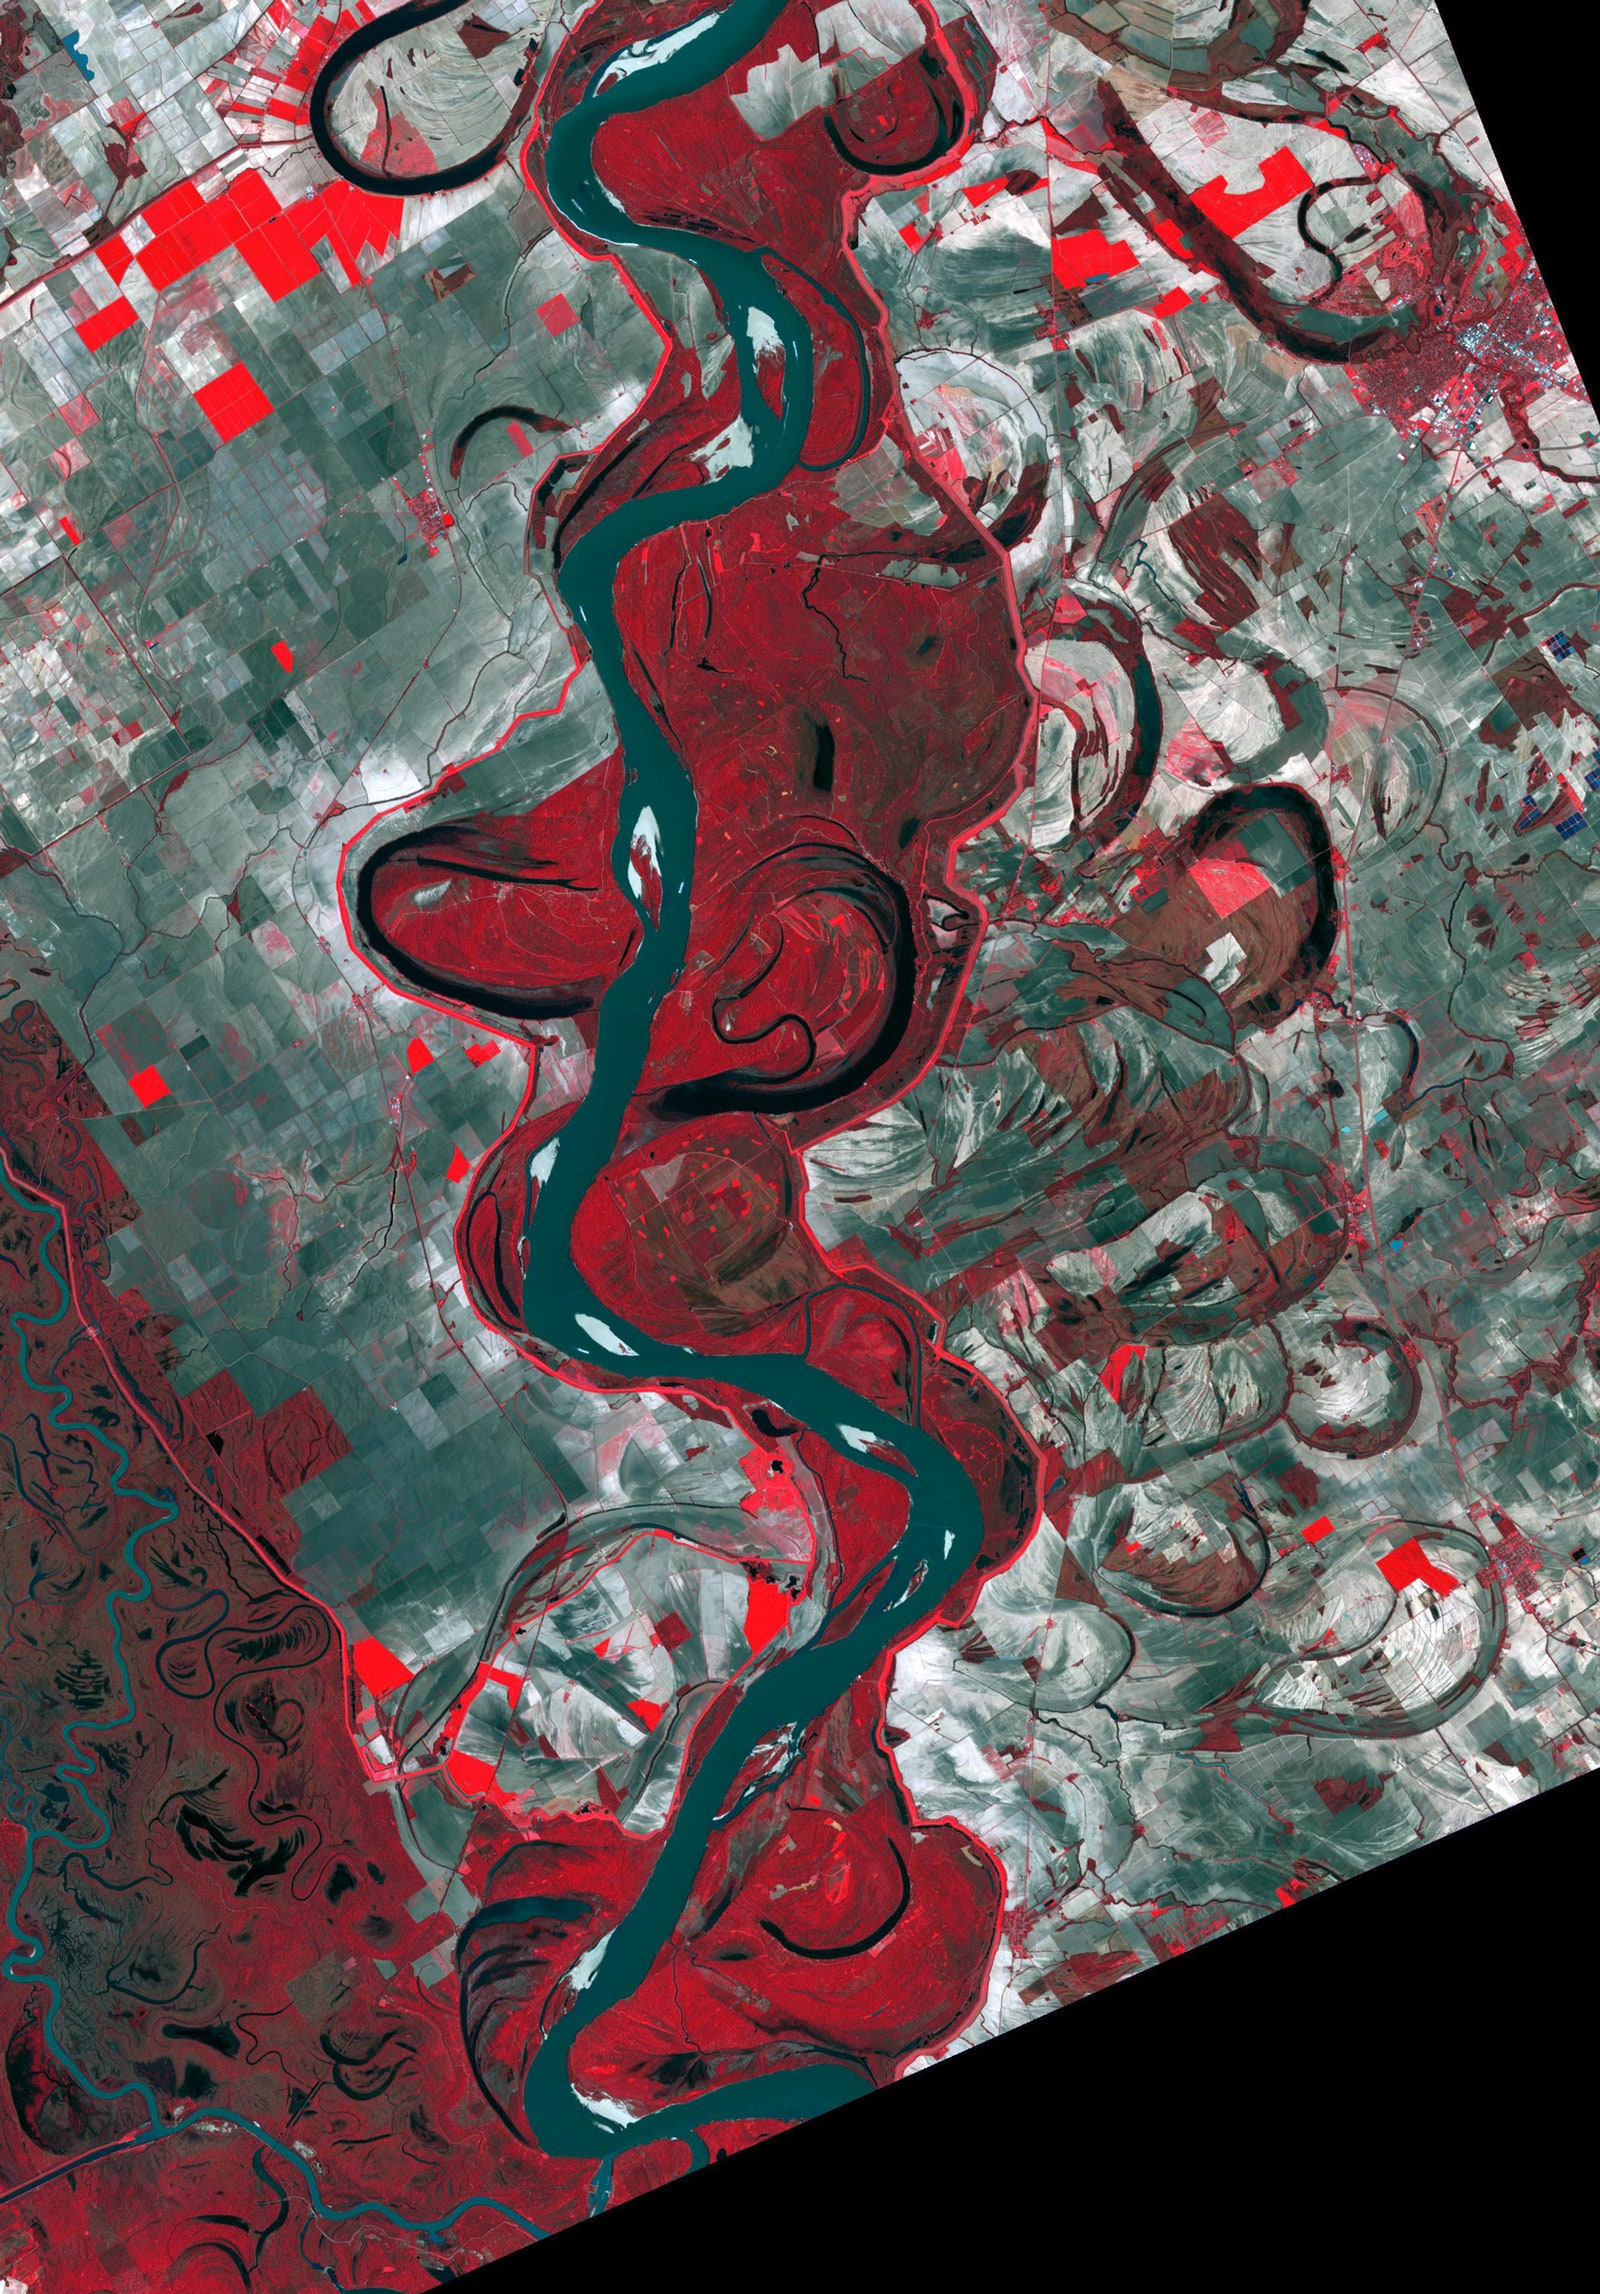 Documentation of Missippi River over the last 70 years via Nasa:Meti:AIST